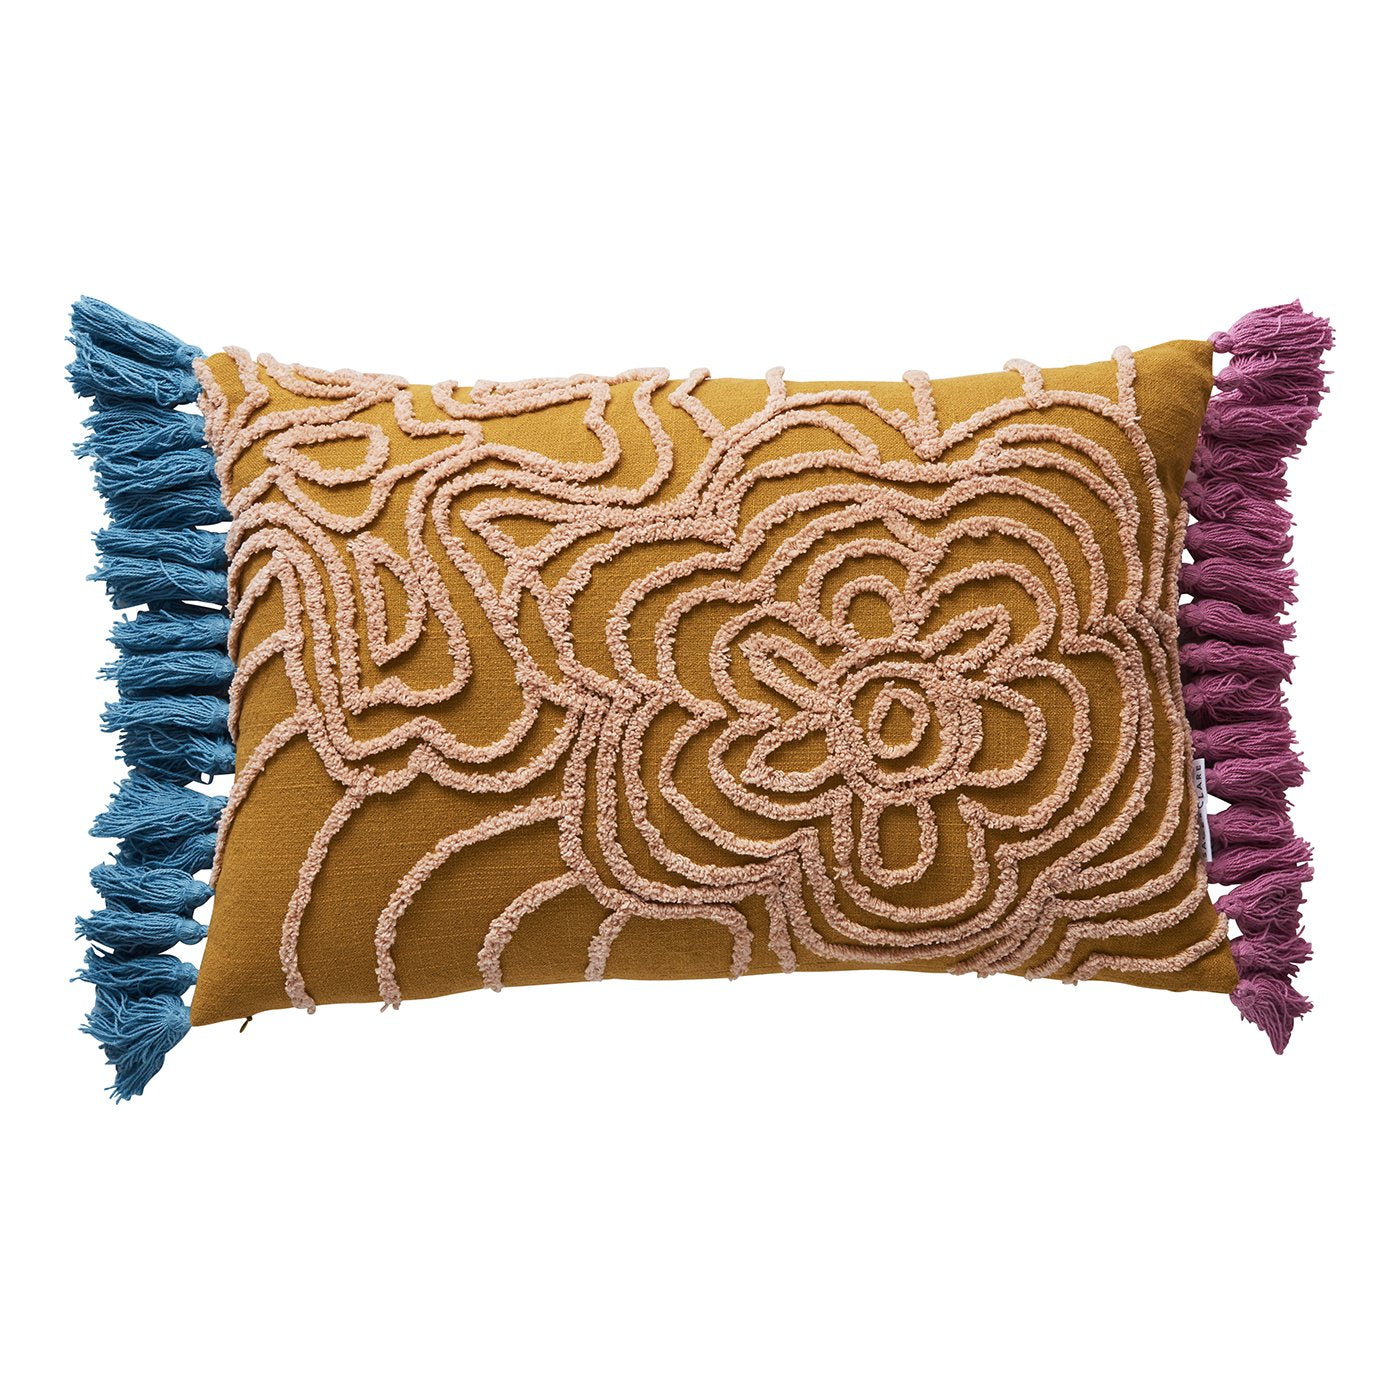 Evelyn Tufted Cushion in honey and parchment, with tassels and embroidered floral design